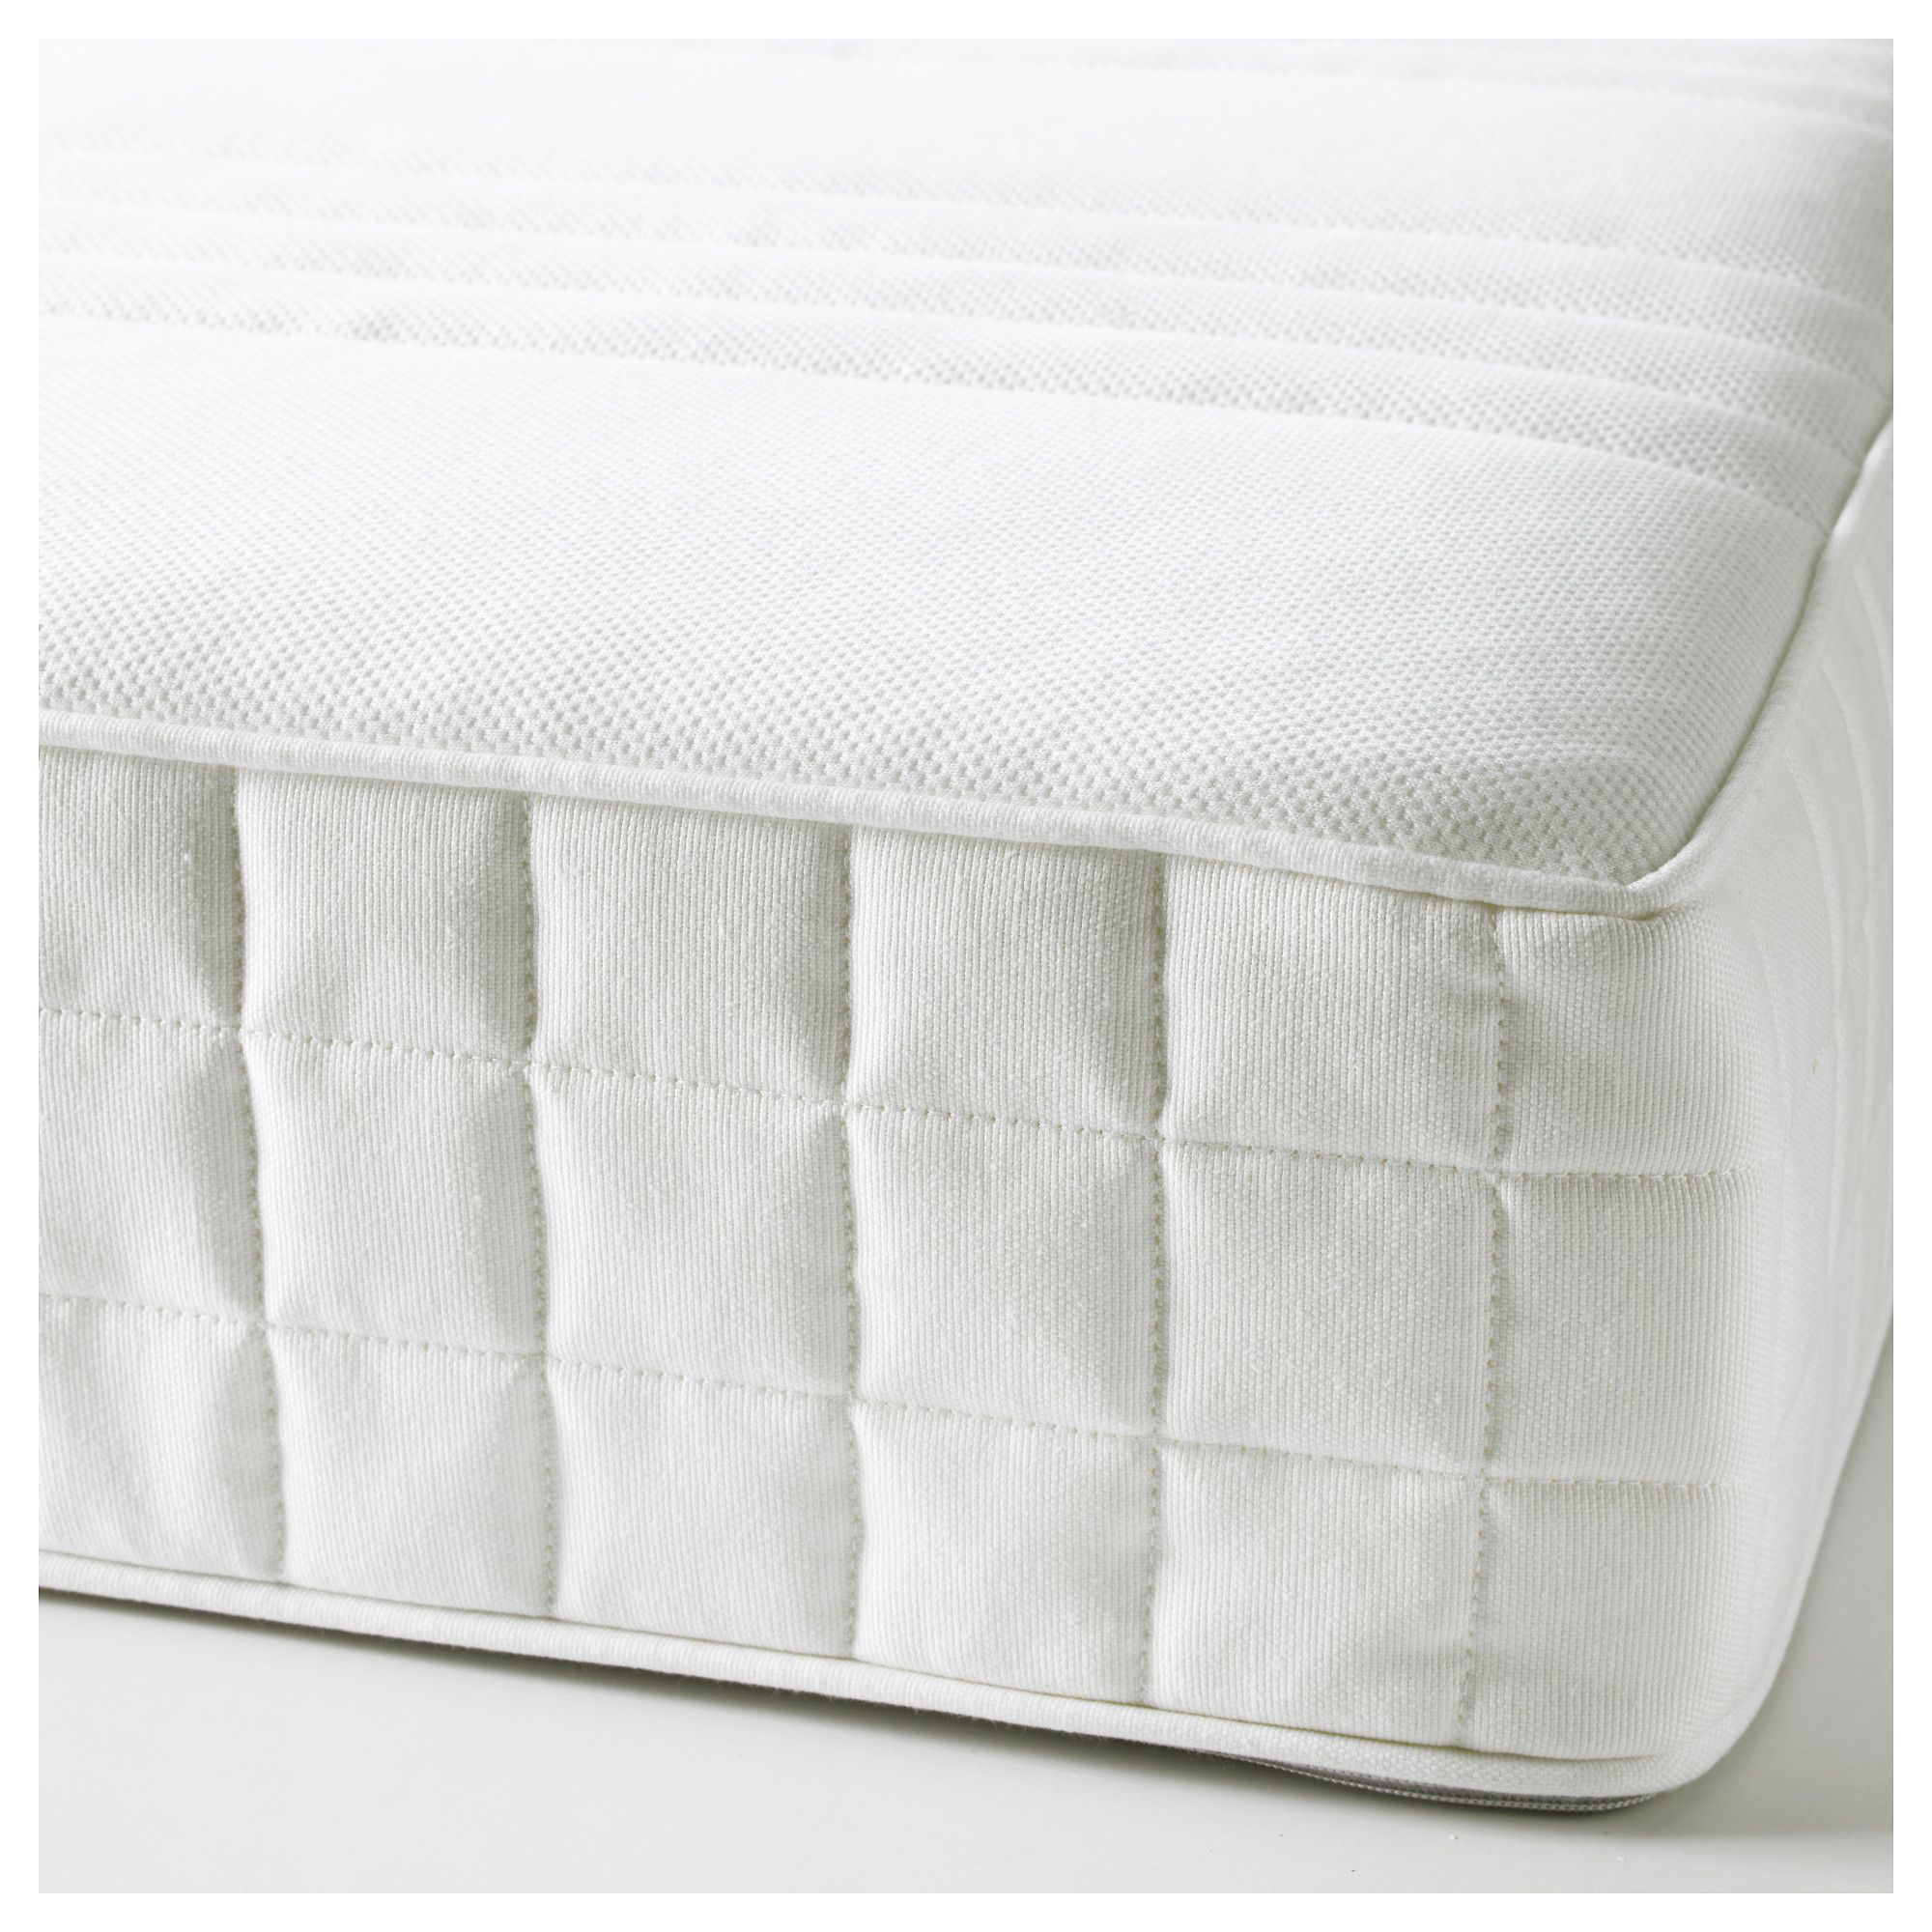 alyssum mattress tight cal foam size latex iii lovely jeseniacoant top of fresh natural images king